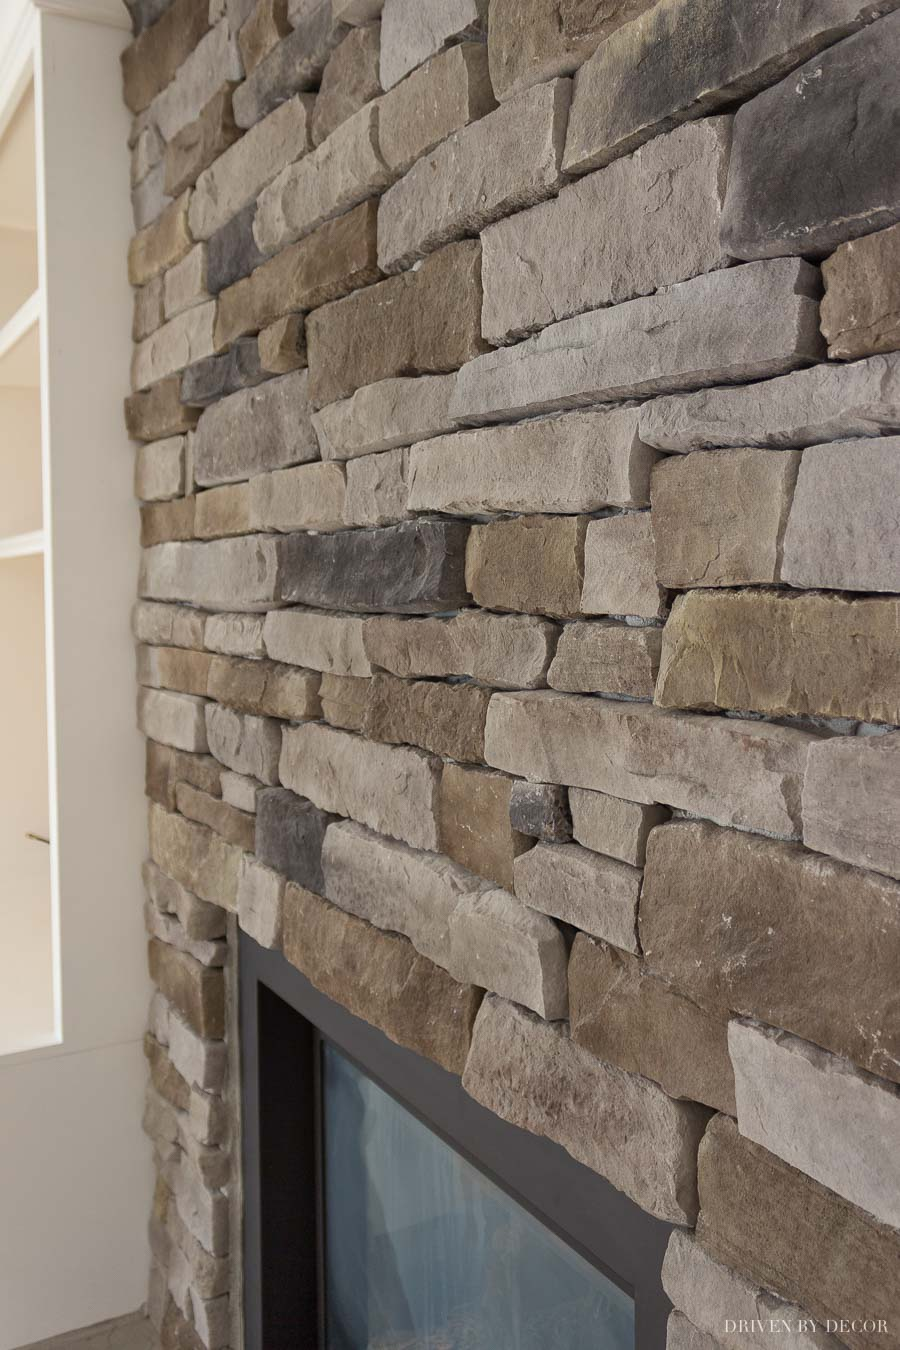 Stonecraft Industries' Ledgestone in Pennsylvania color - beautiful!